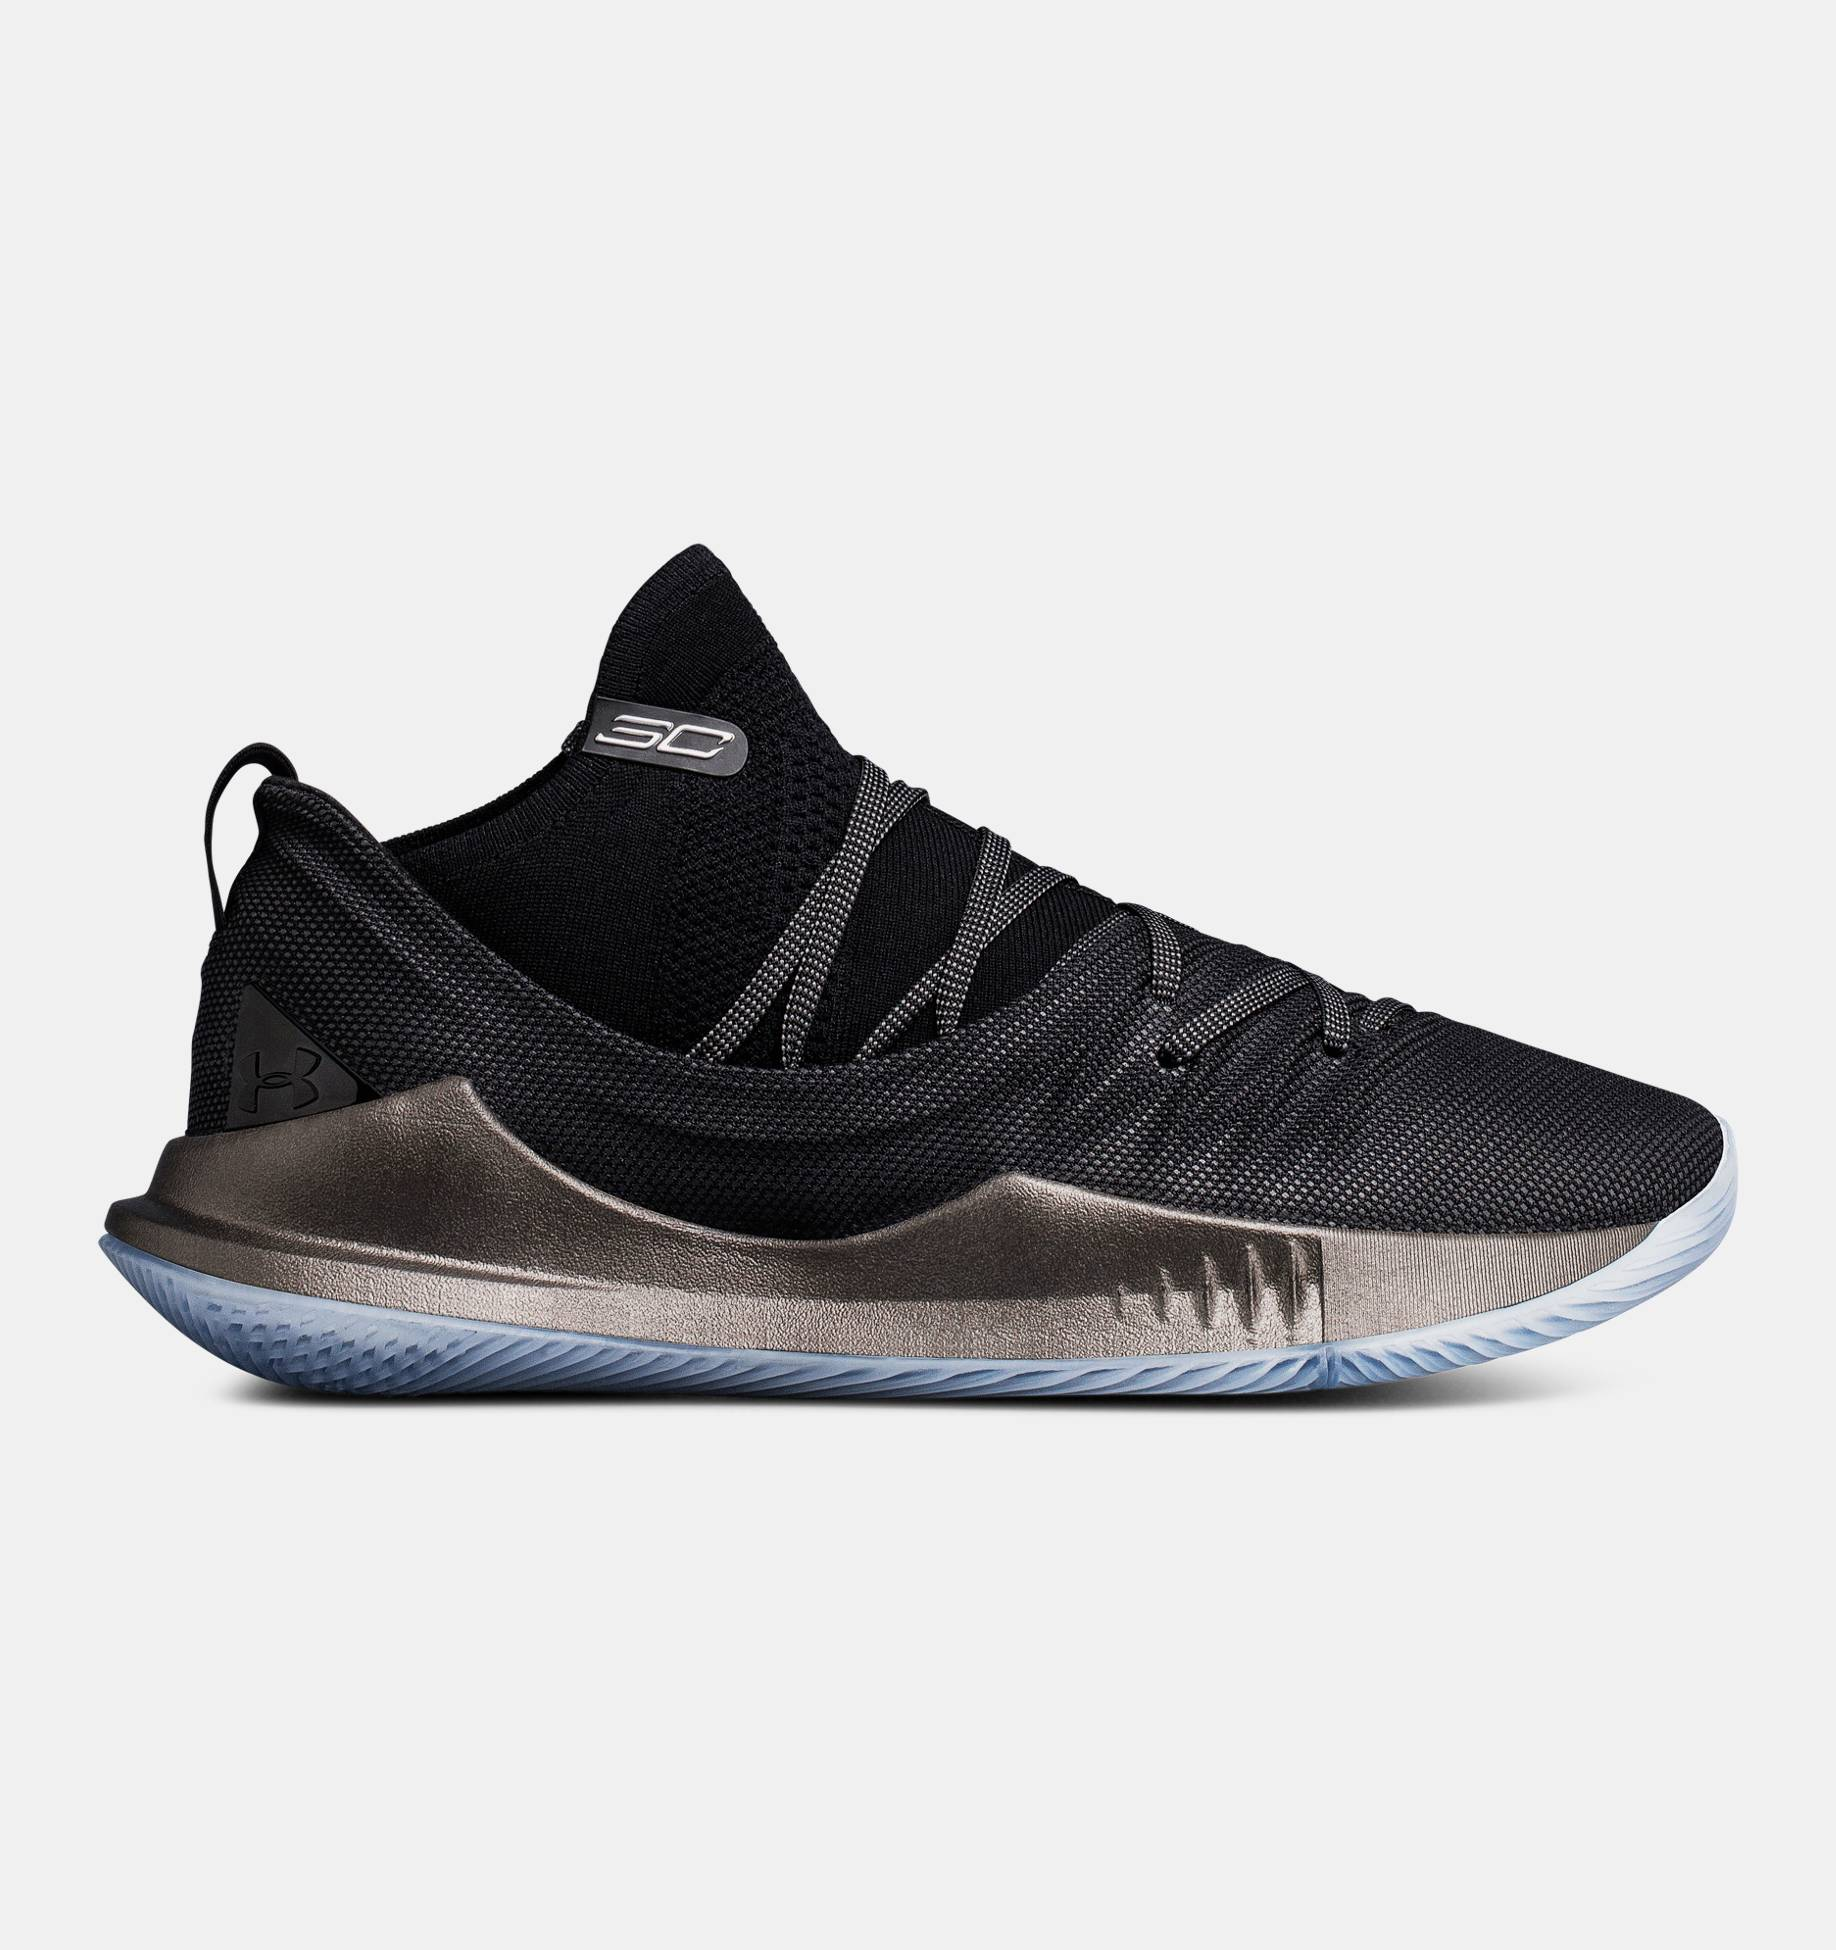 under armour curry 5 pi day restock 1